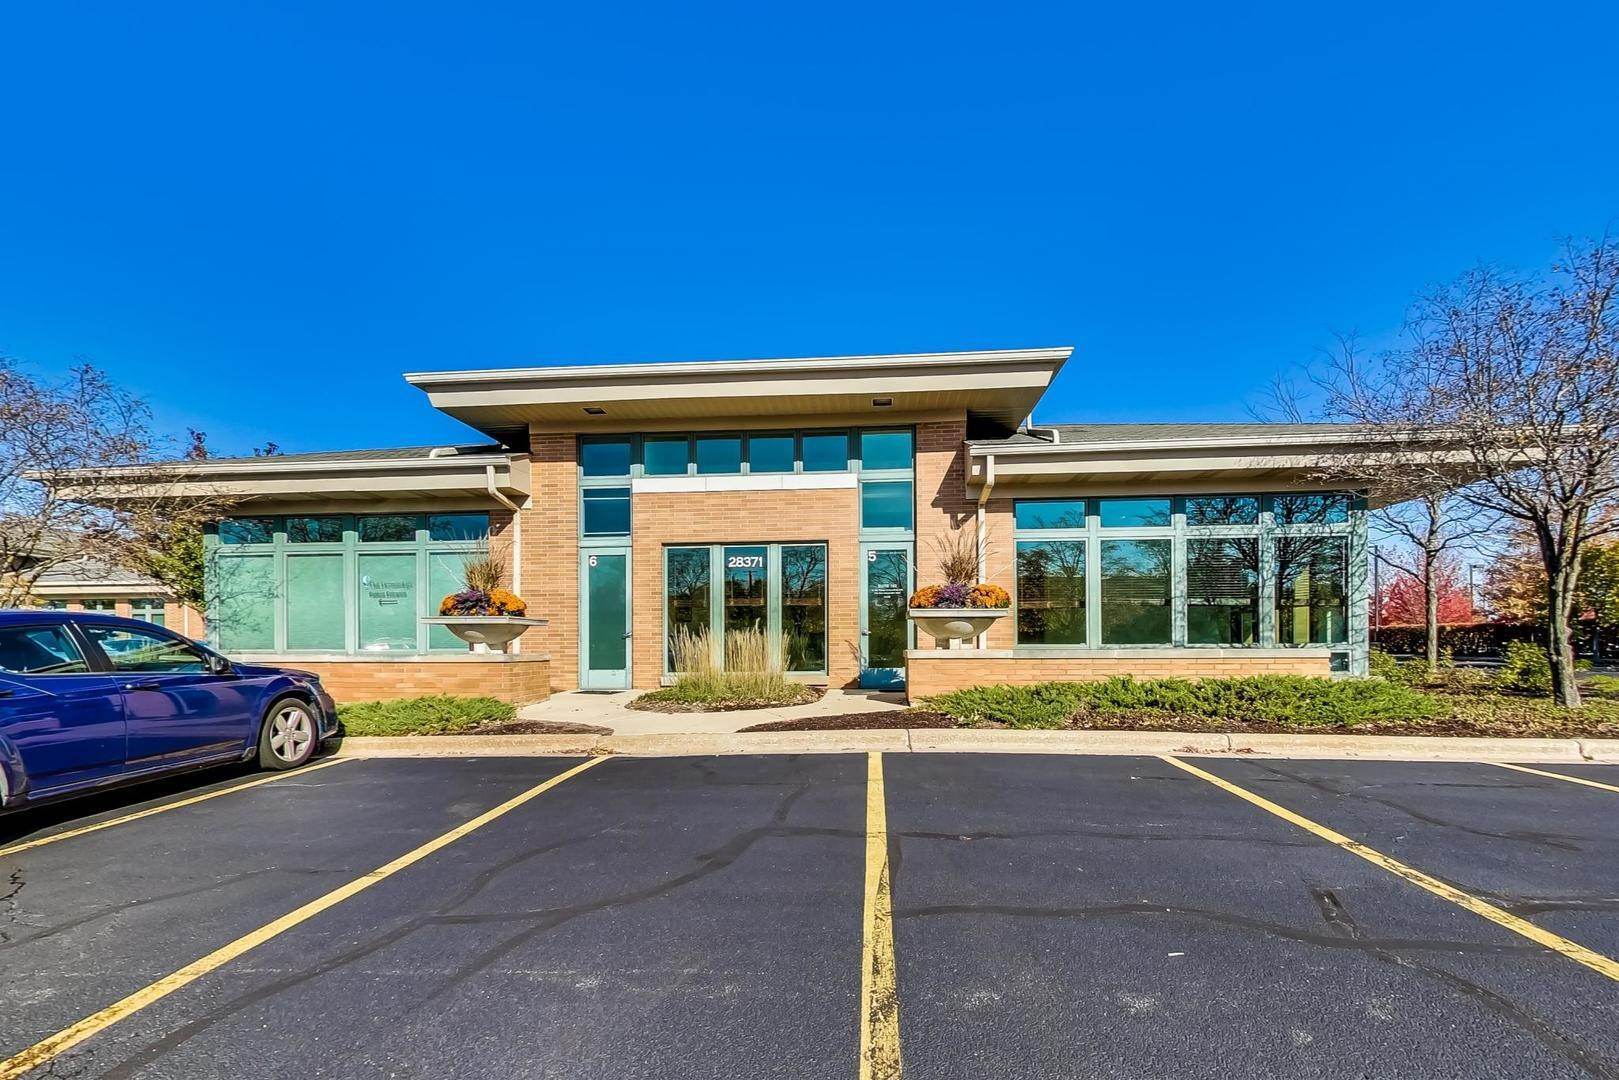 Commercial for Sale at 28371 Davis Parkway Warrenville, Illinois 60555 United States